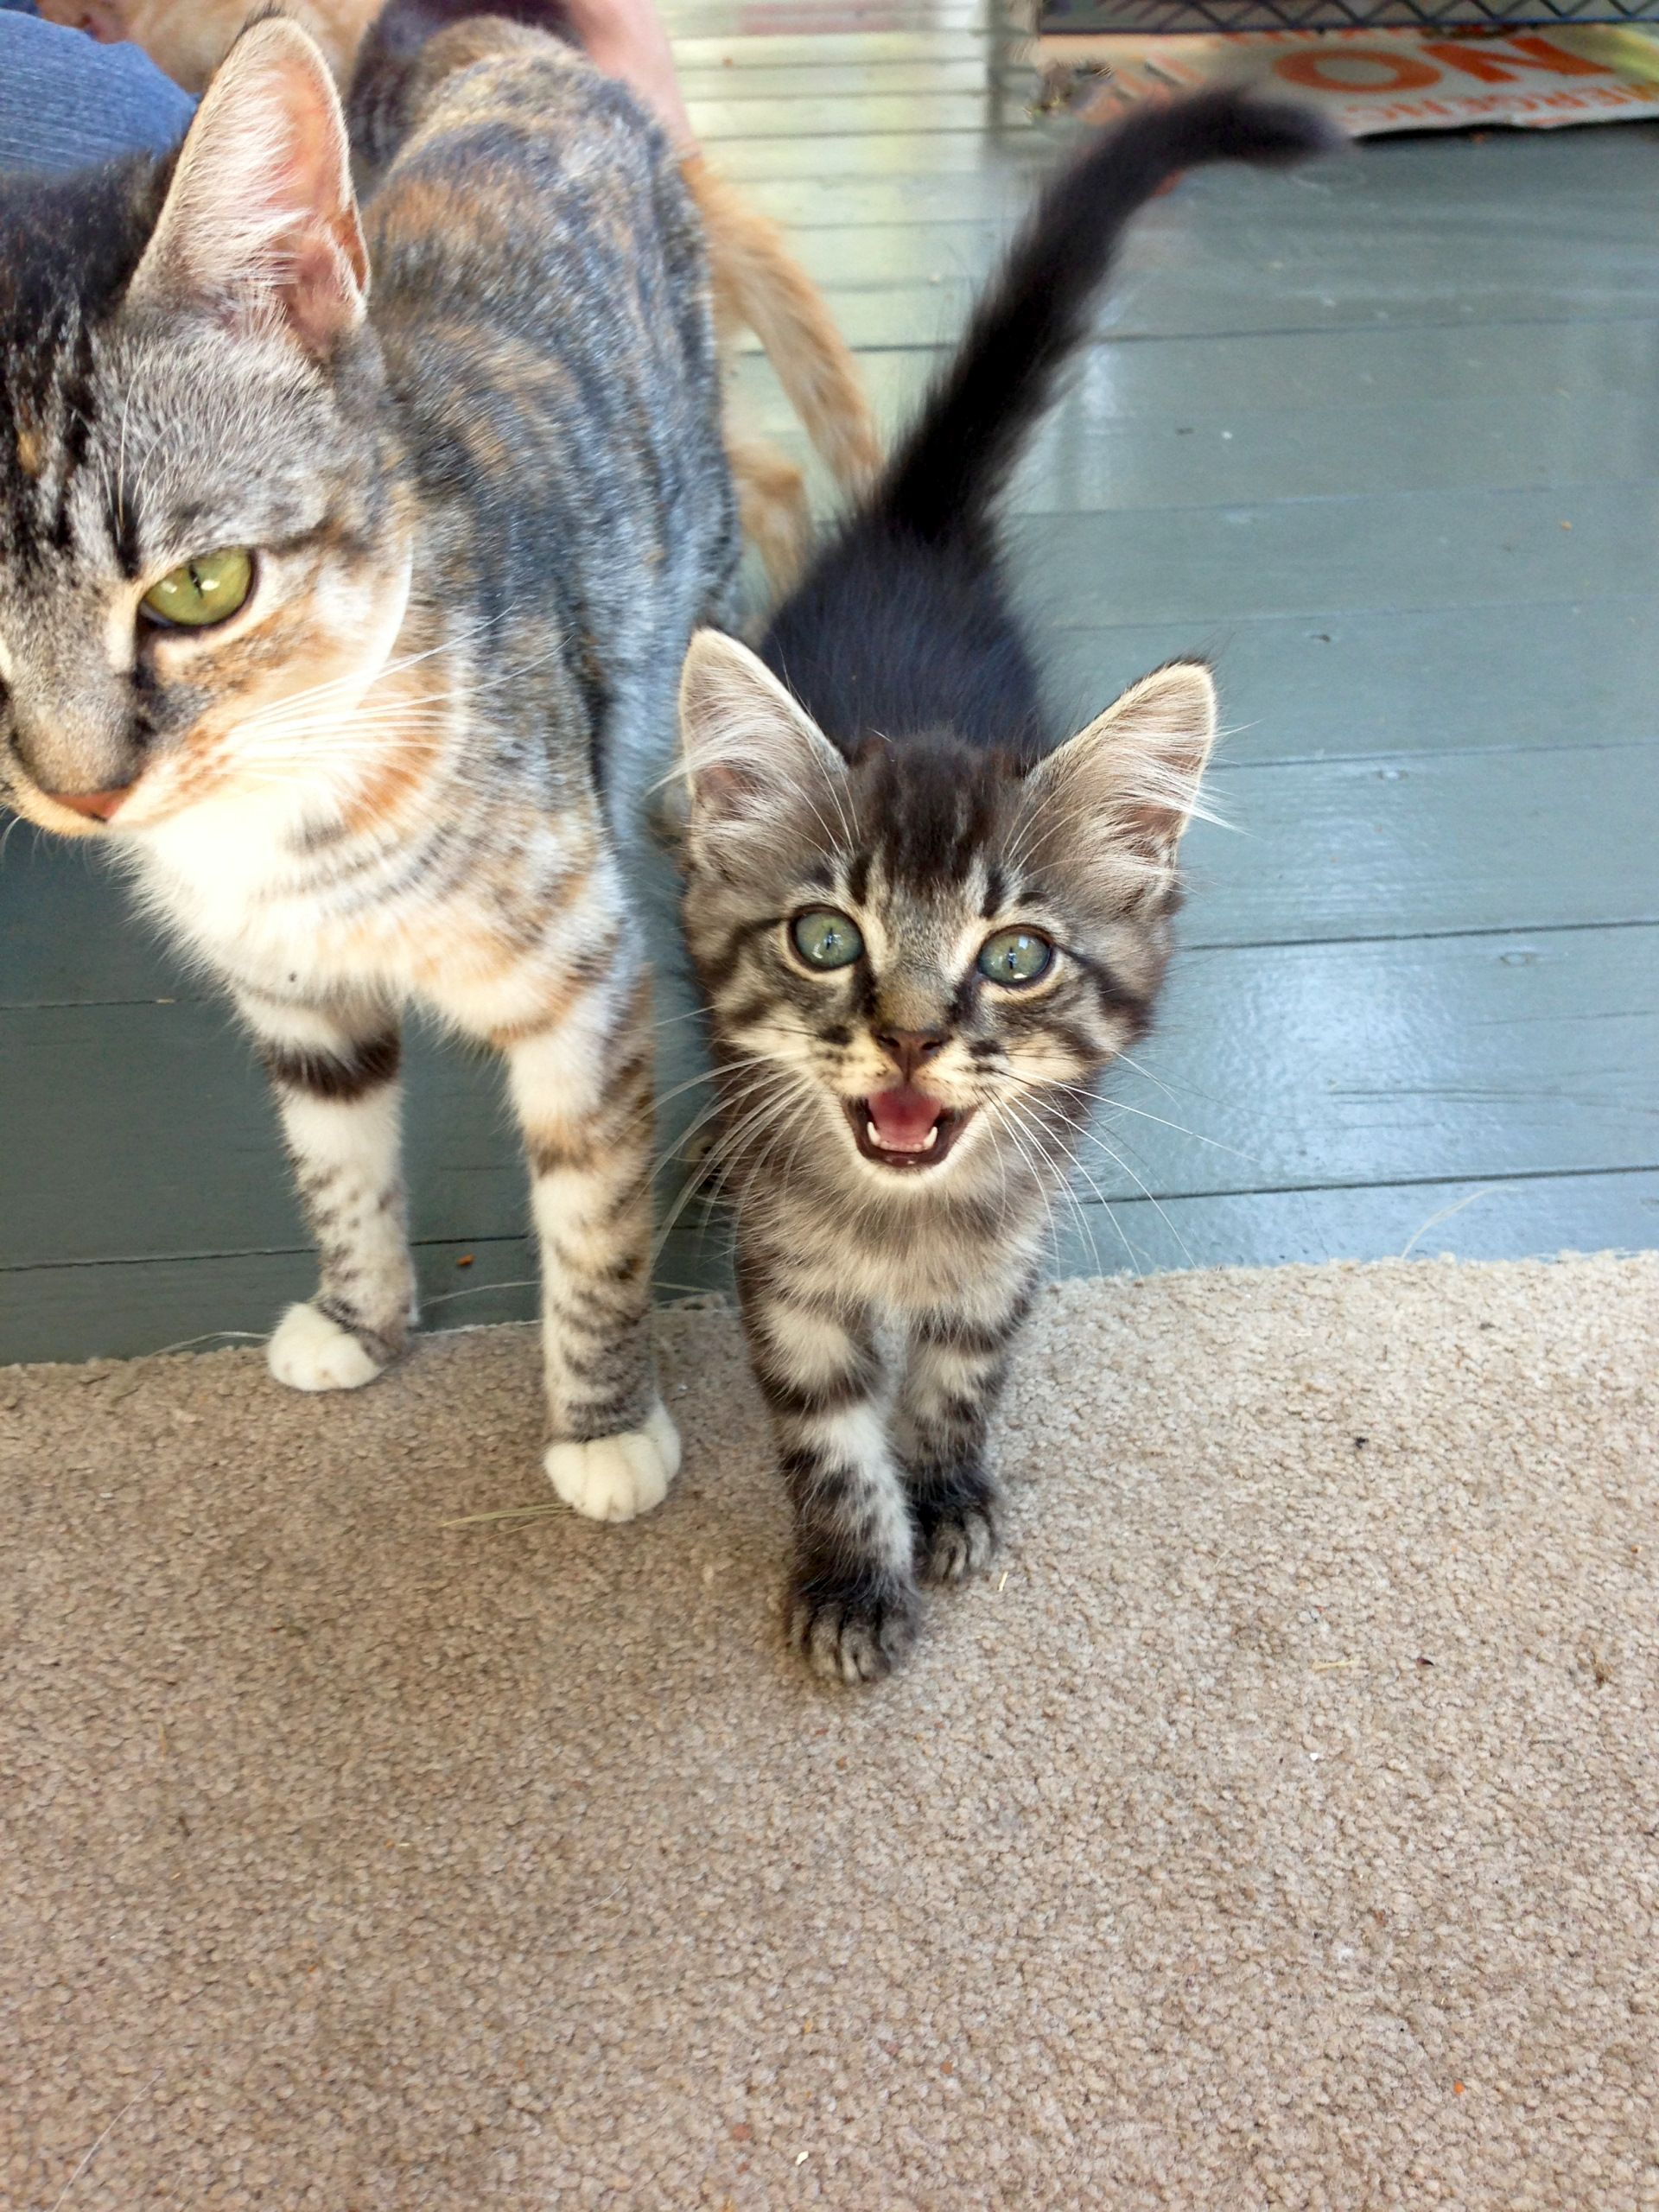 Cute Kitten Meows For Attention Next To Mom Kittens Kittens Cutest Kitten Meowing Kittens